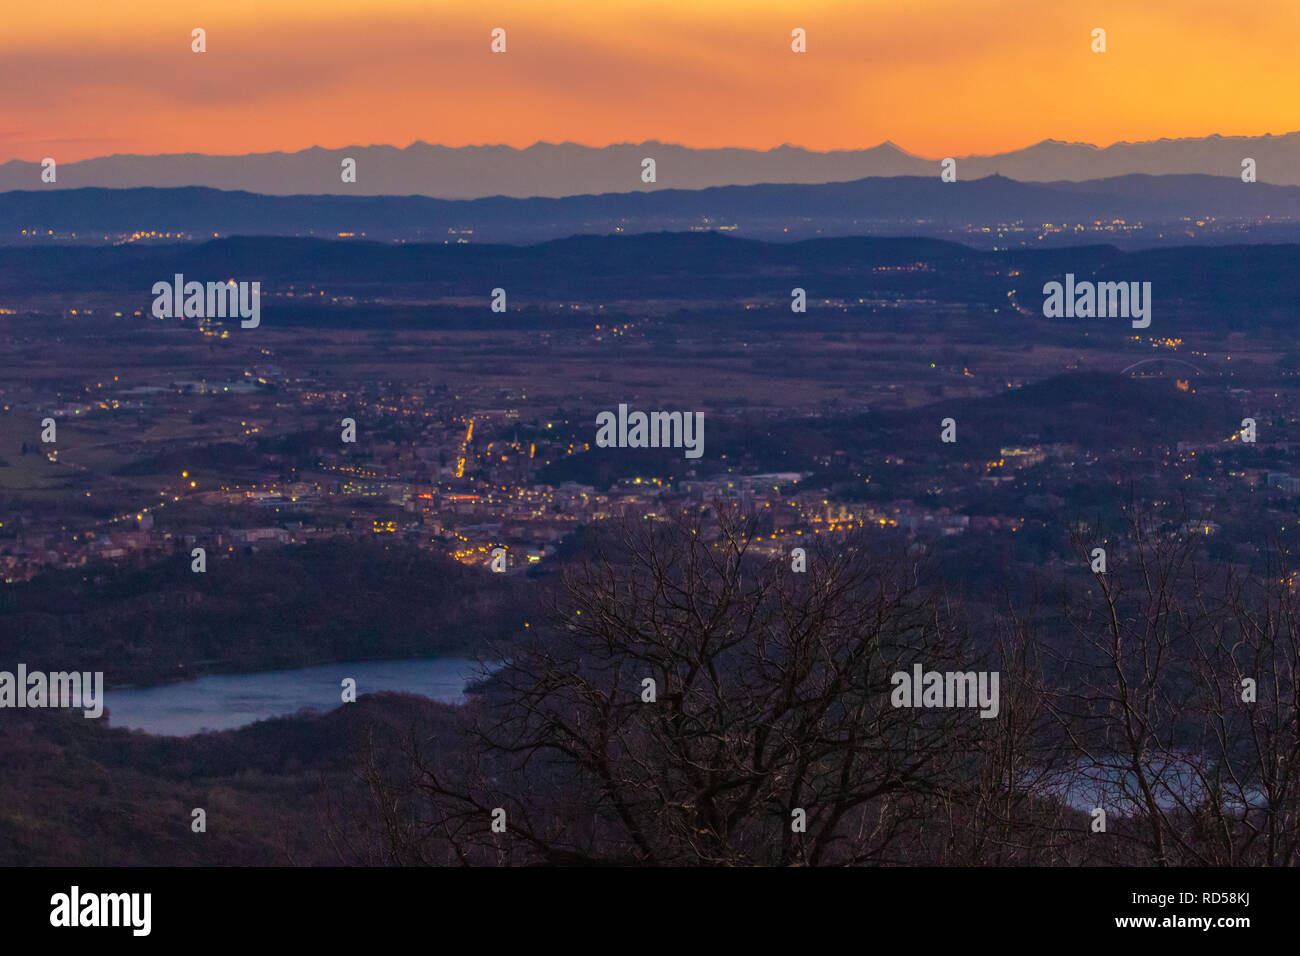 Autumn Sunset View towards Turin from Andrate in Piedmont, Piemonte region of Italy - Stock Image